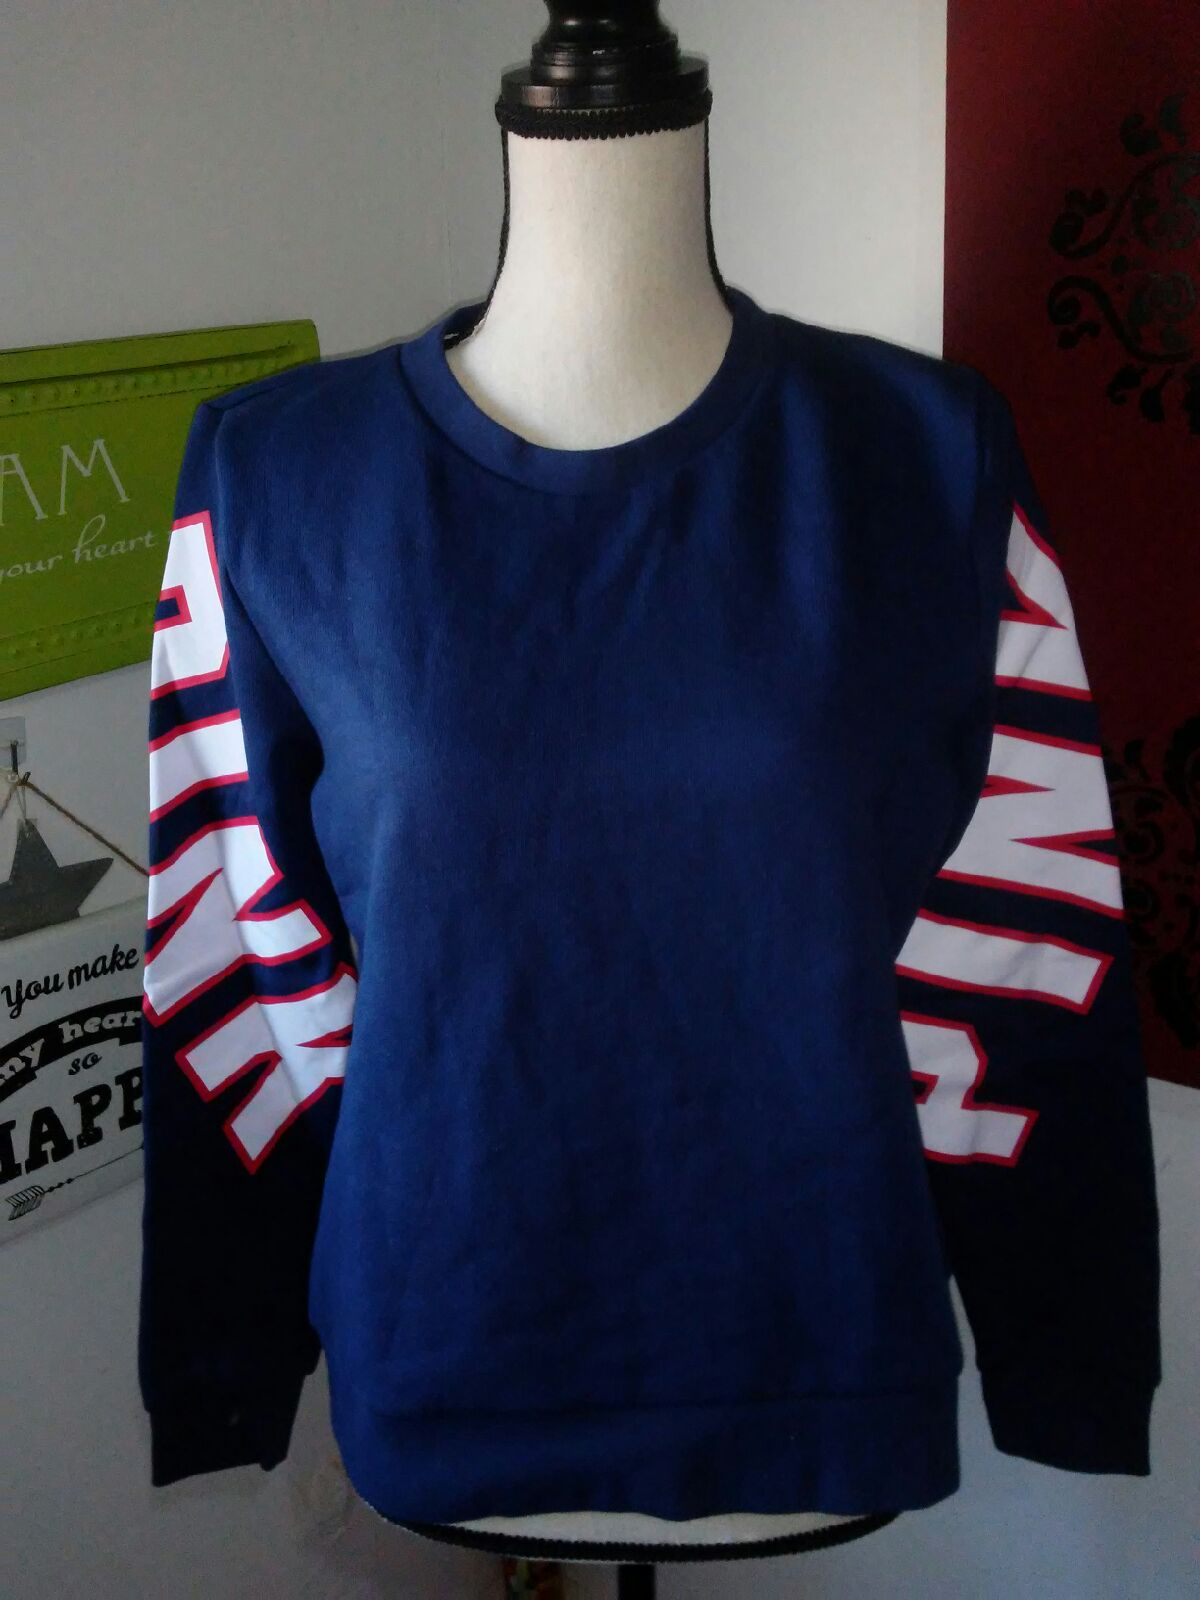 VS PINK CREWNECK SWEATSHIRT SIZE SMALL - Mercari: BUY & SELL ...